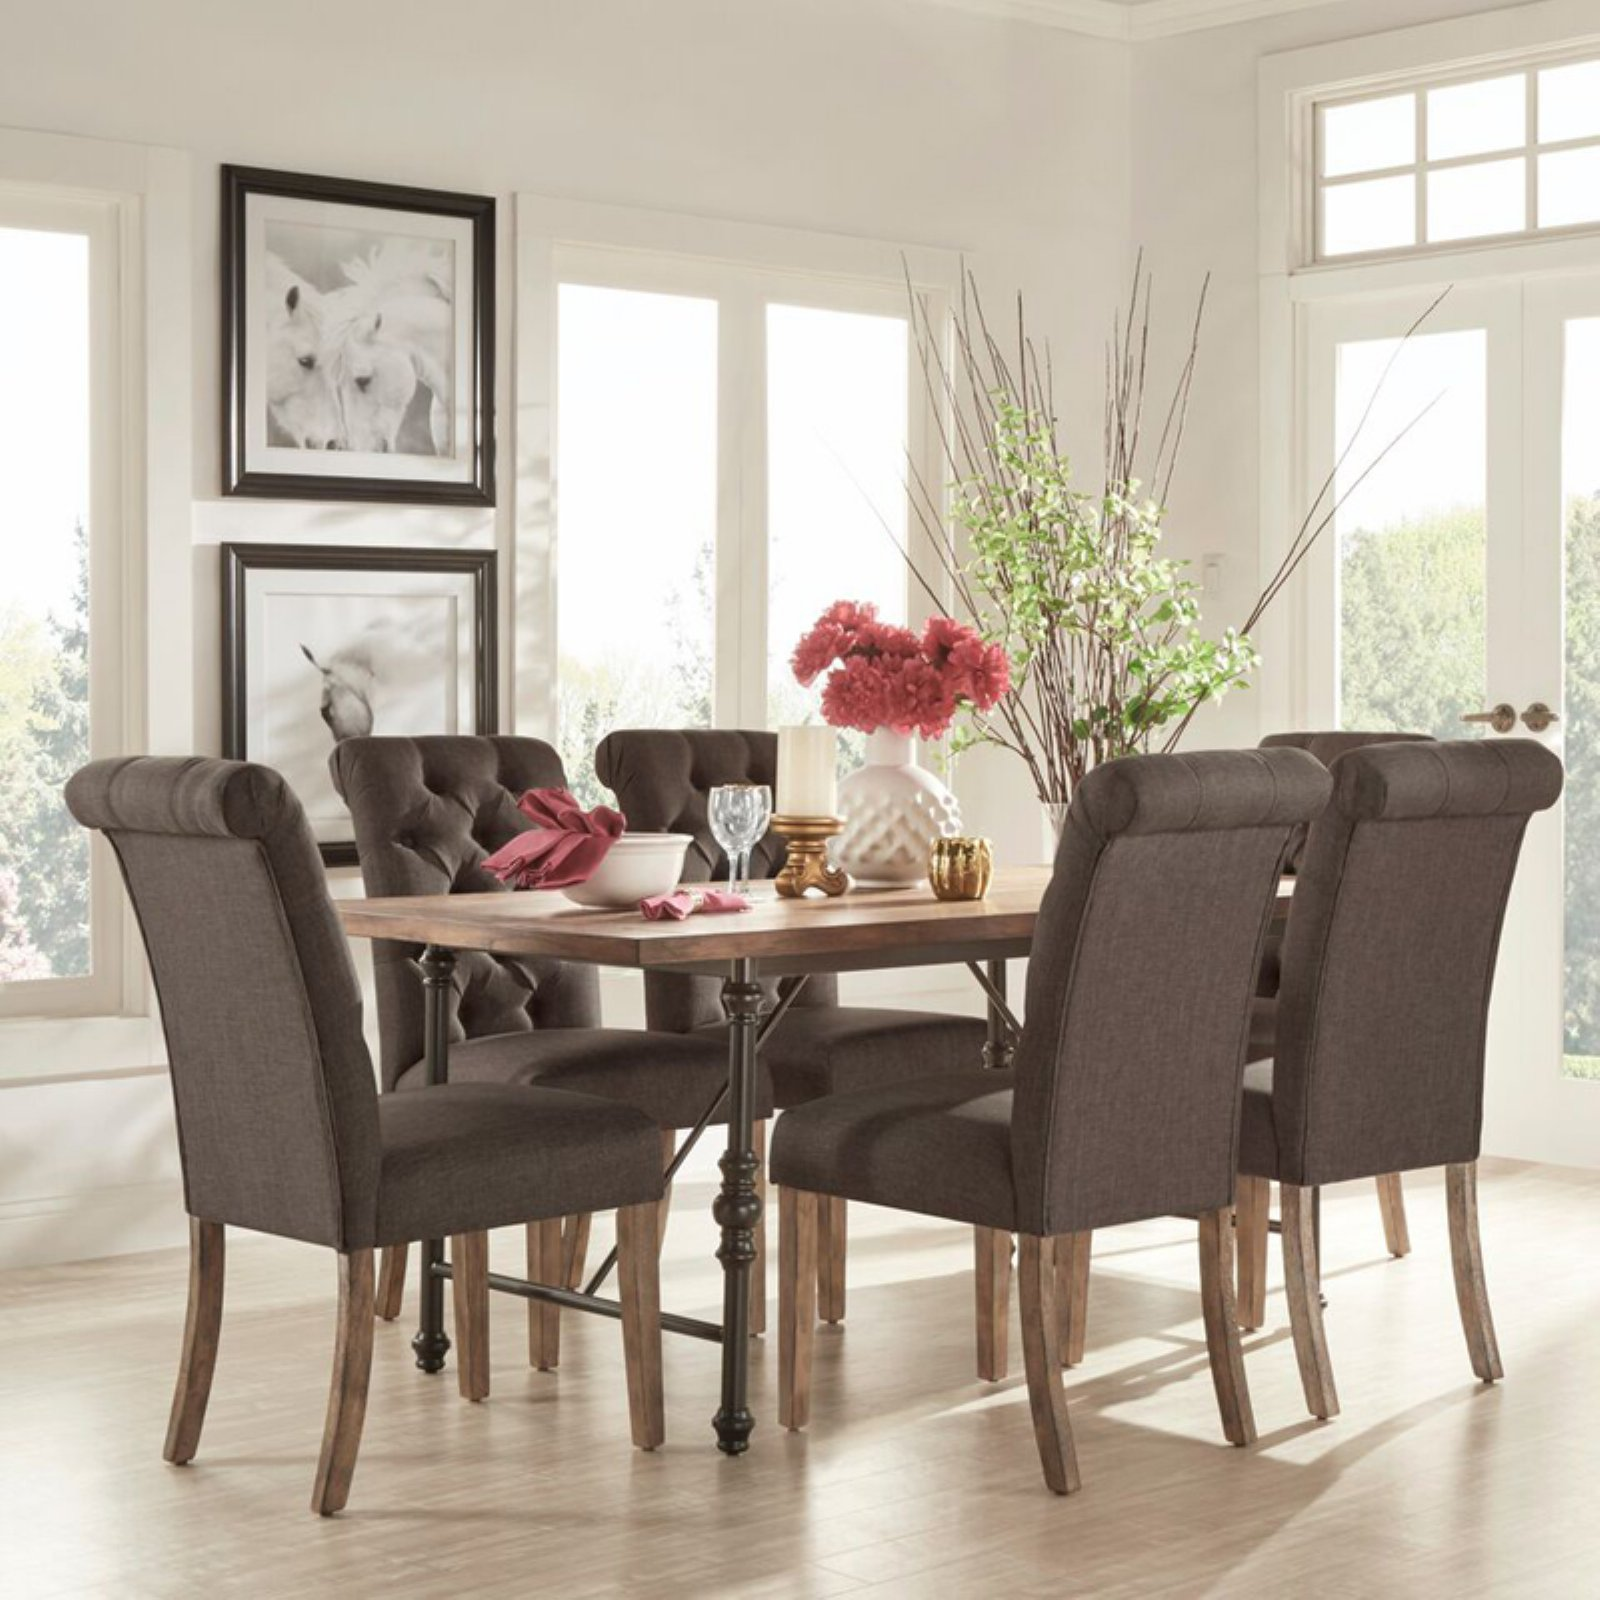 Weston Home 7 Piece Industrial Dining Set with Dark Gray Tufted Chairs